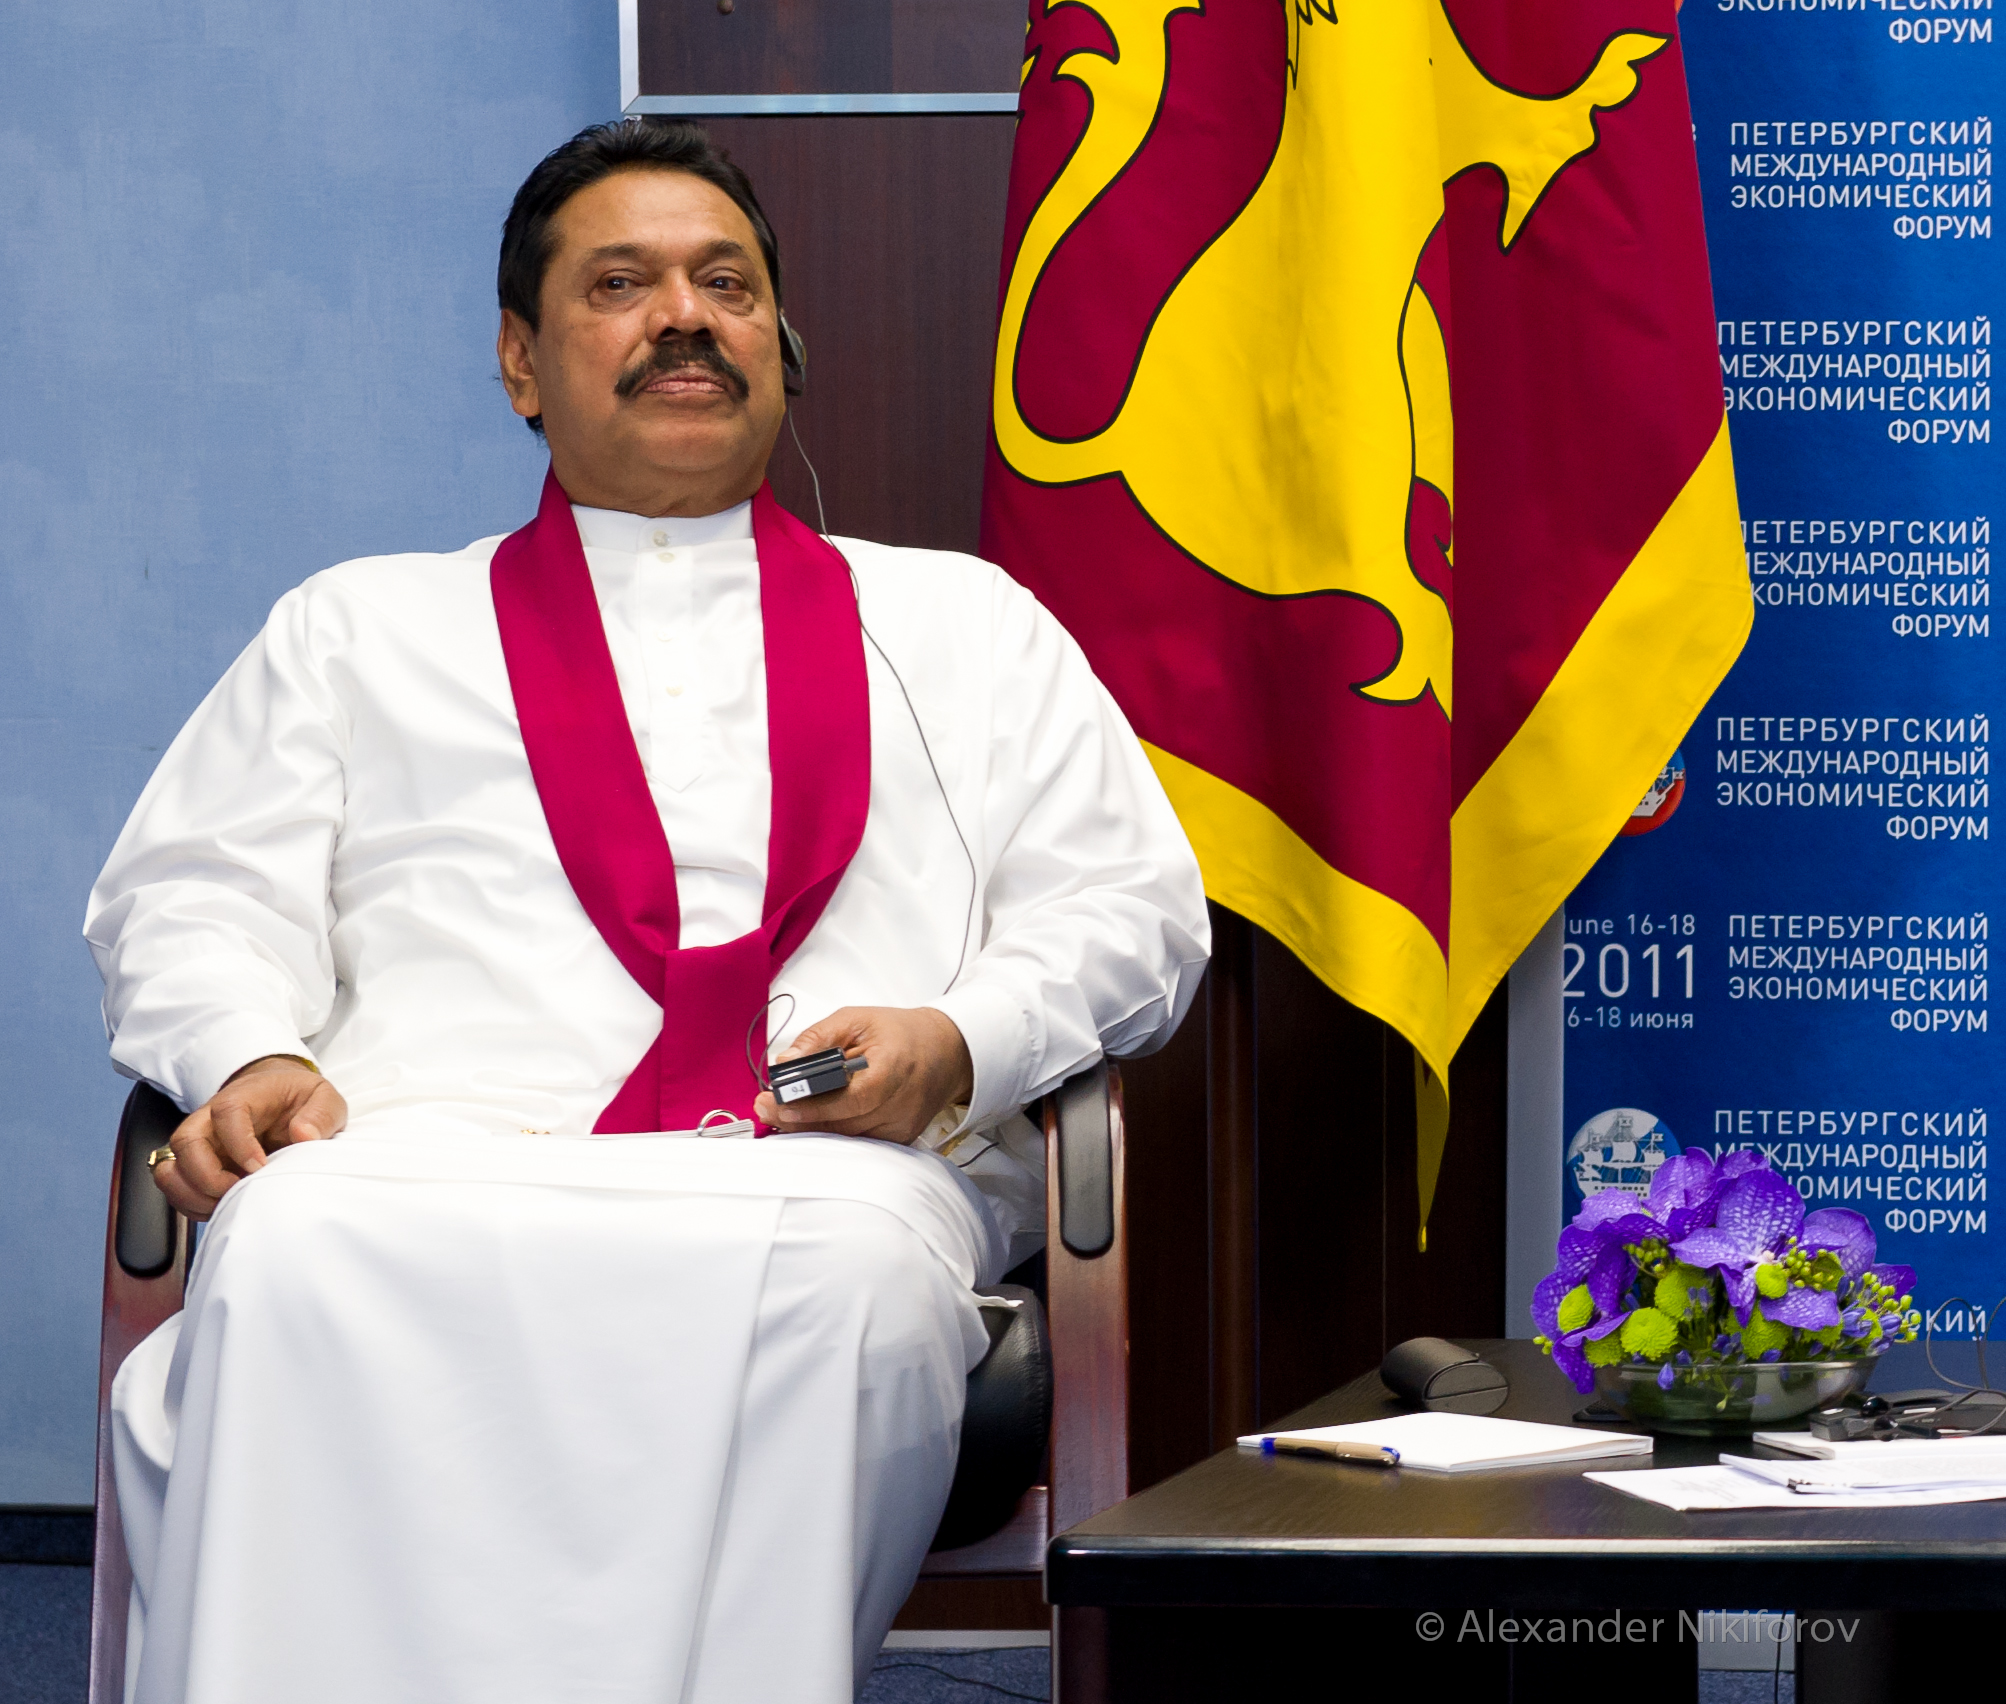 Sri Lanka PM announces withdrawal from UN resolution to investigate war crimes